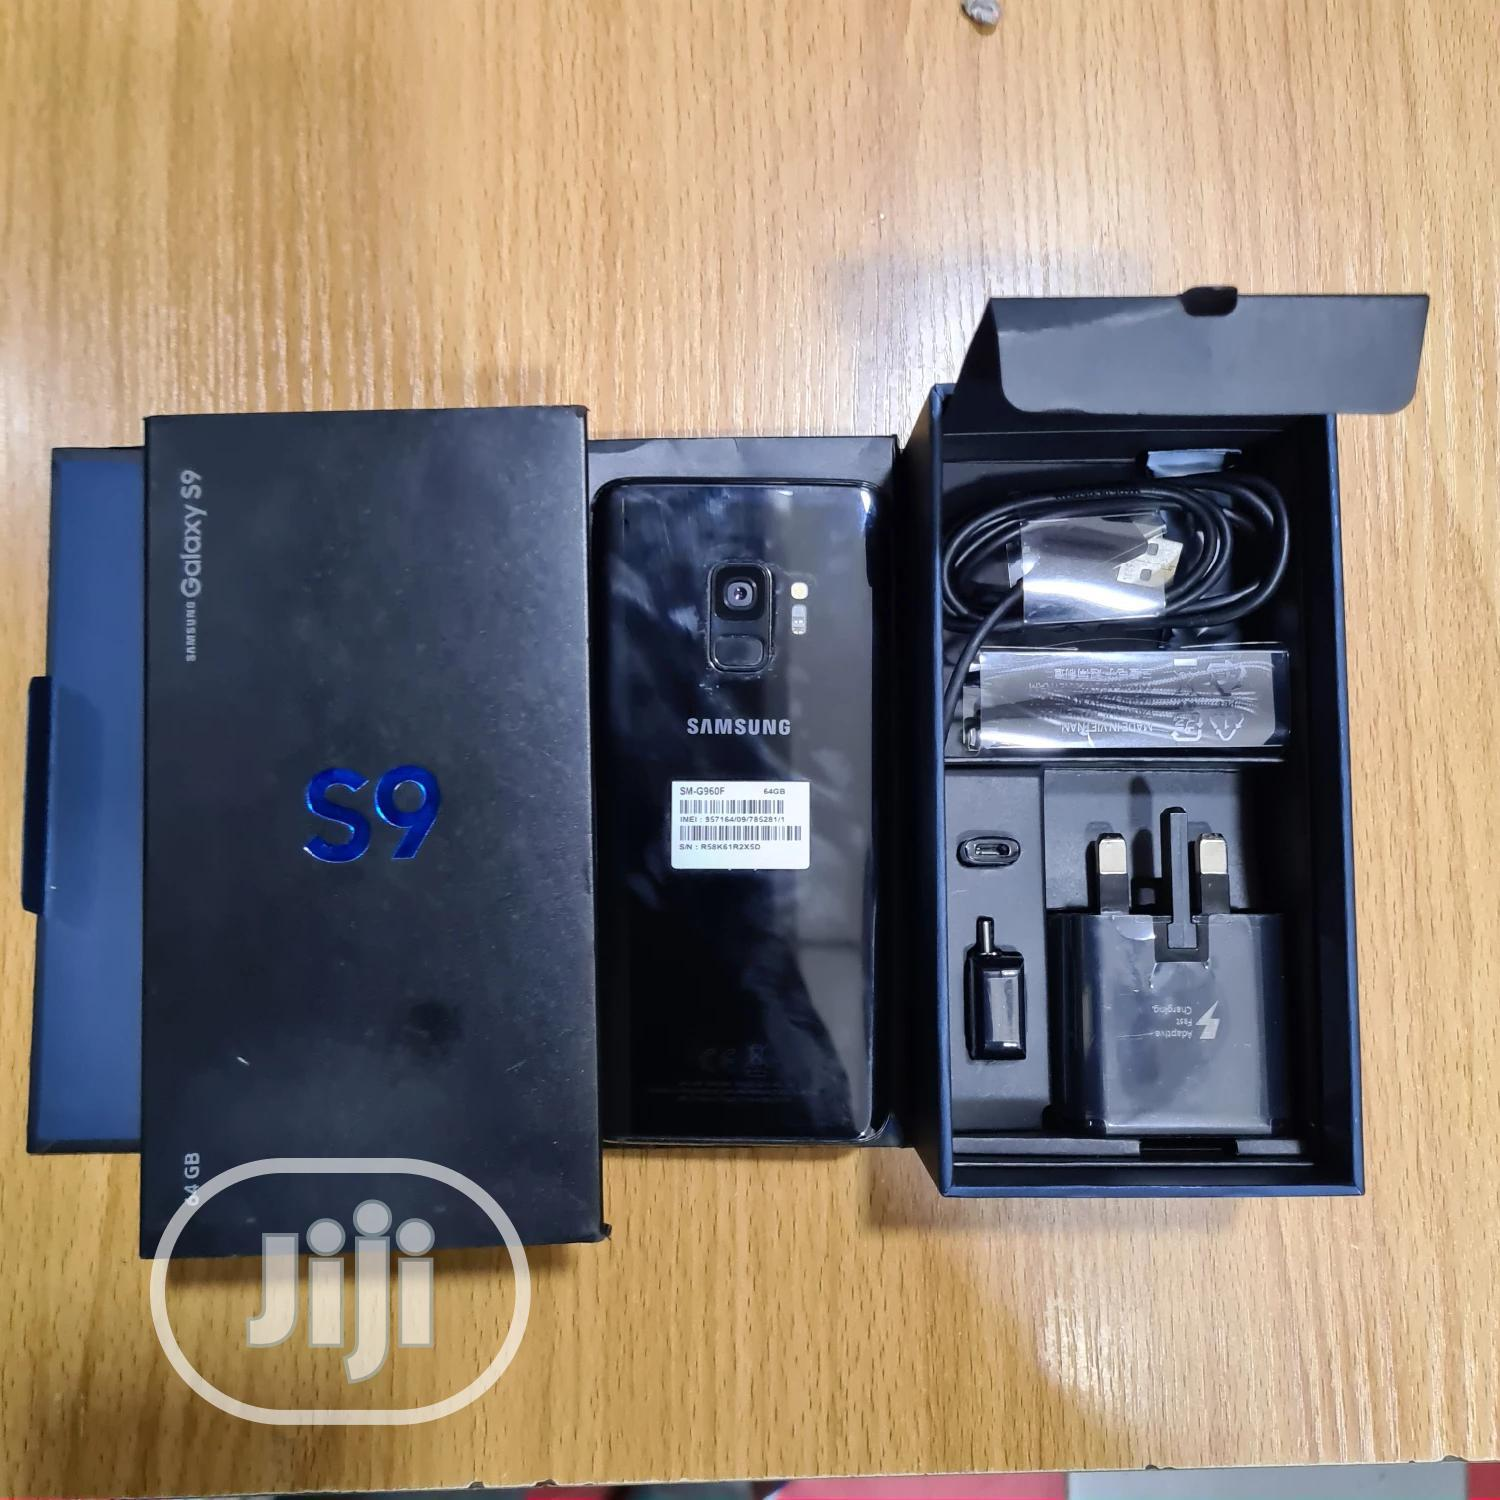 New Samsung Galaxy S9 64 GB Black | Mobile Phones for sale in Ikeja, Lagos State, Nigeria